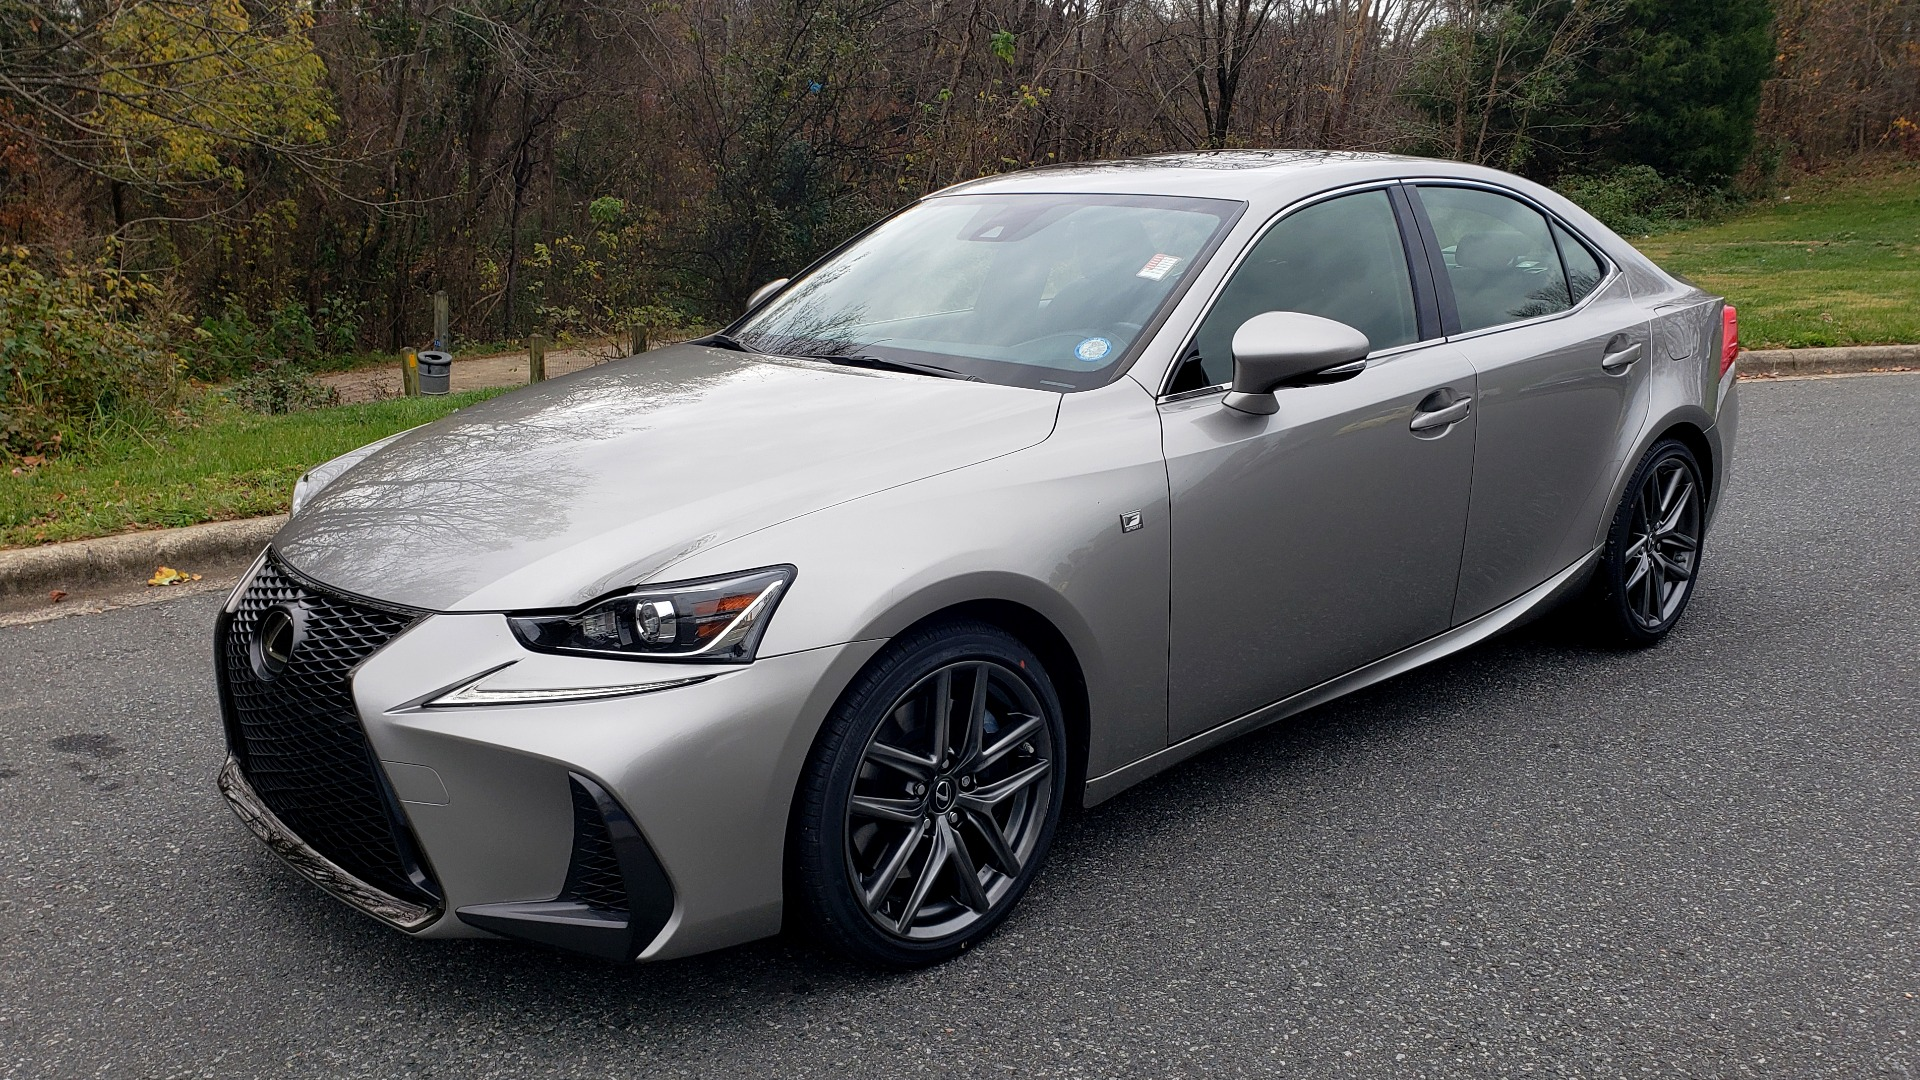 Used 2017 Lexus IS 200 TURBO F-SPORT / BSM / SUNROOF / VENT SEATS / REARVIEW for sale Sold at Formula Imports in Charlotte NC 28227 1